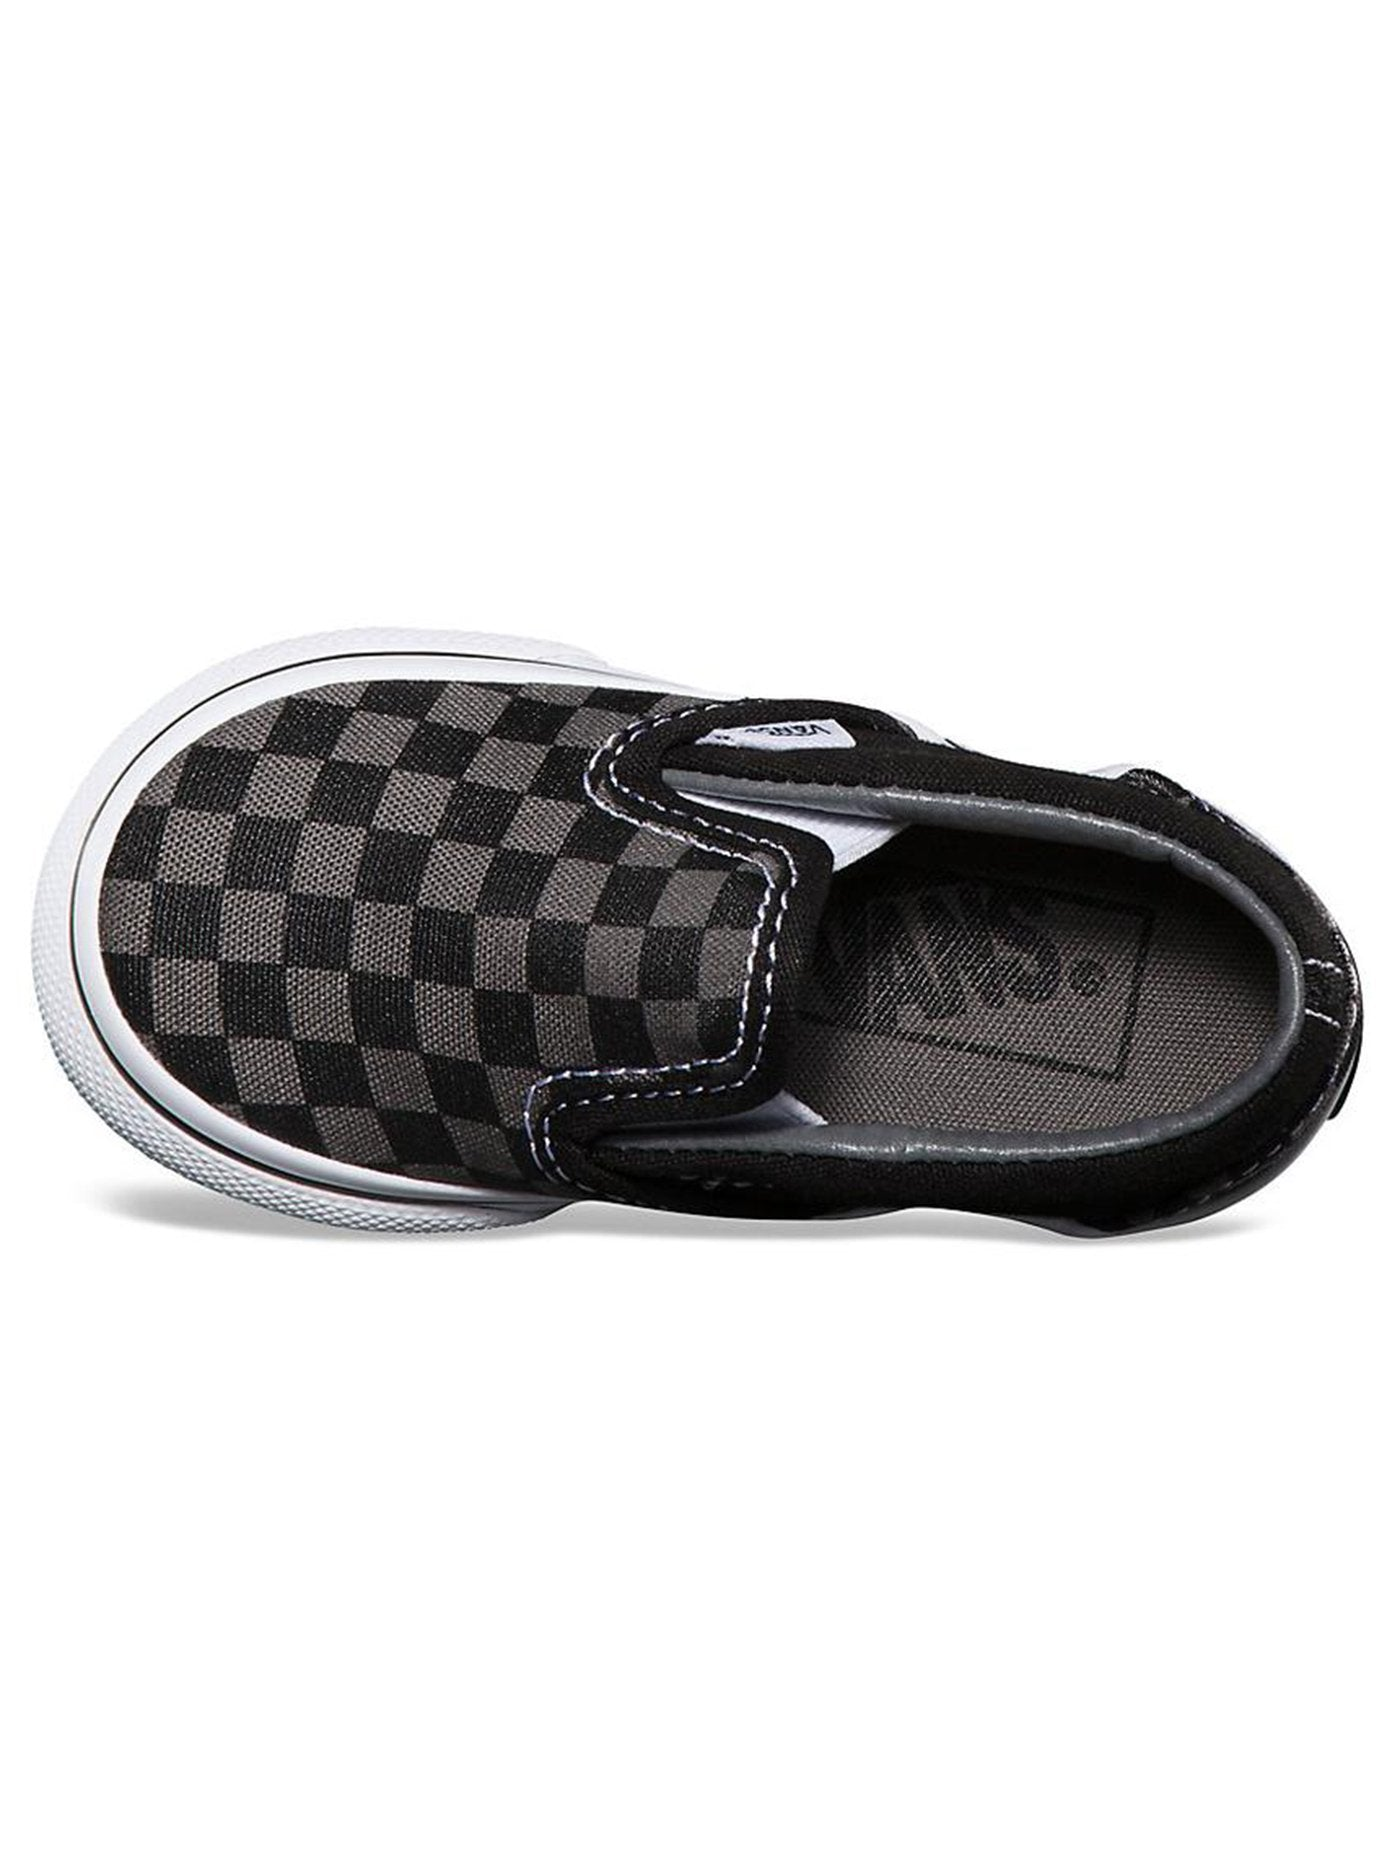 BLK/PEWTER CHECK (BPJ)